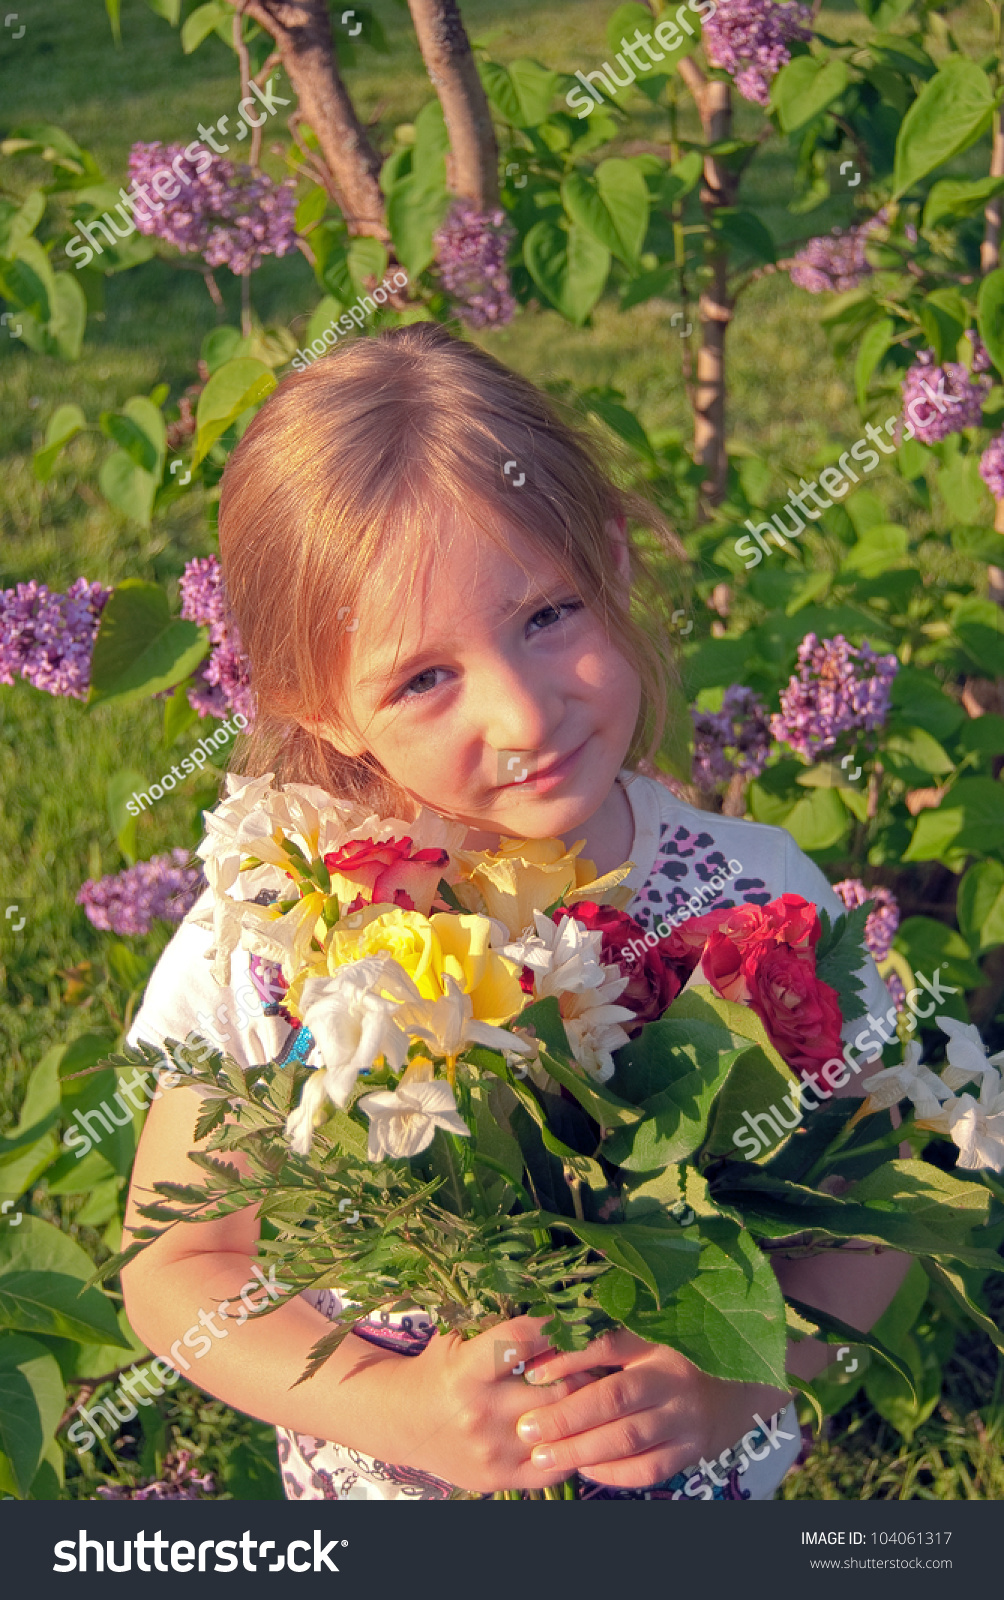 cute little girl flowers garden stock photo (royalty free) 104061317